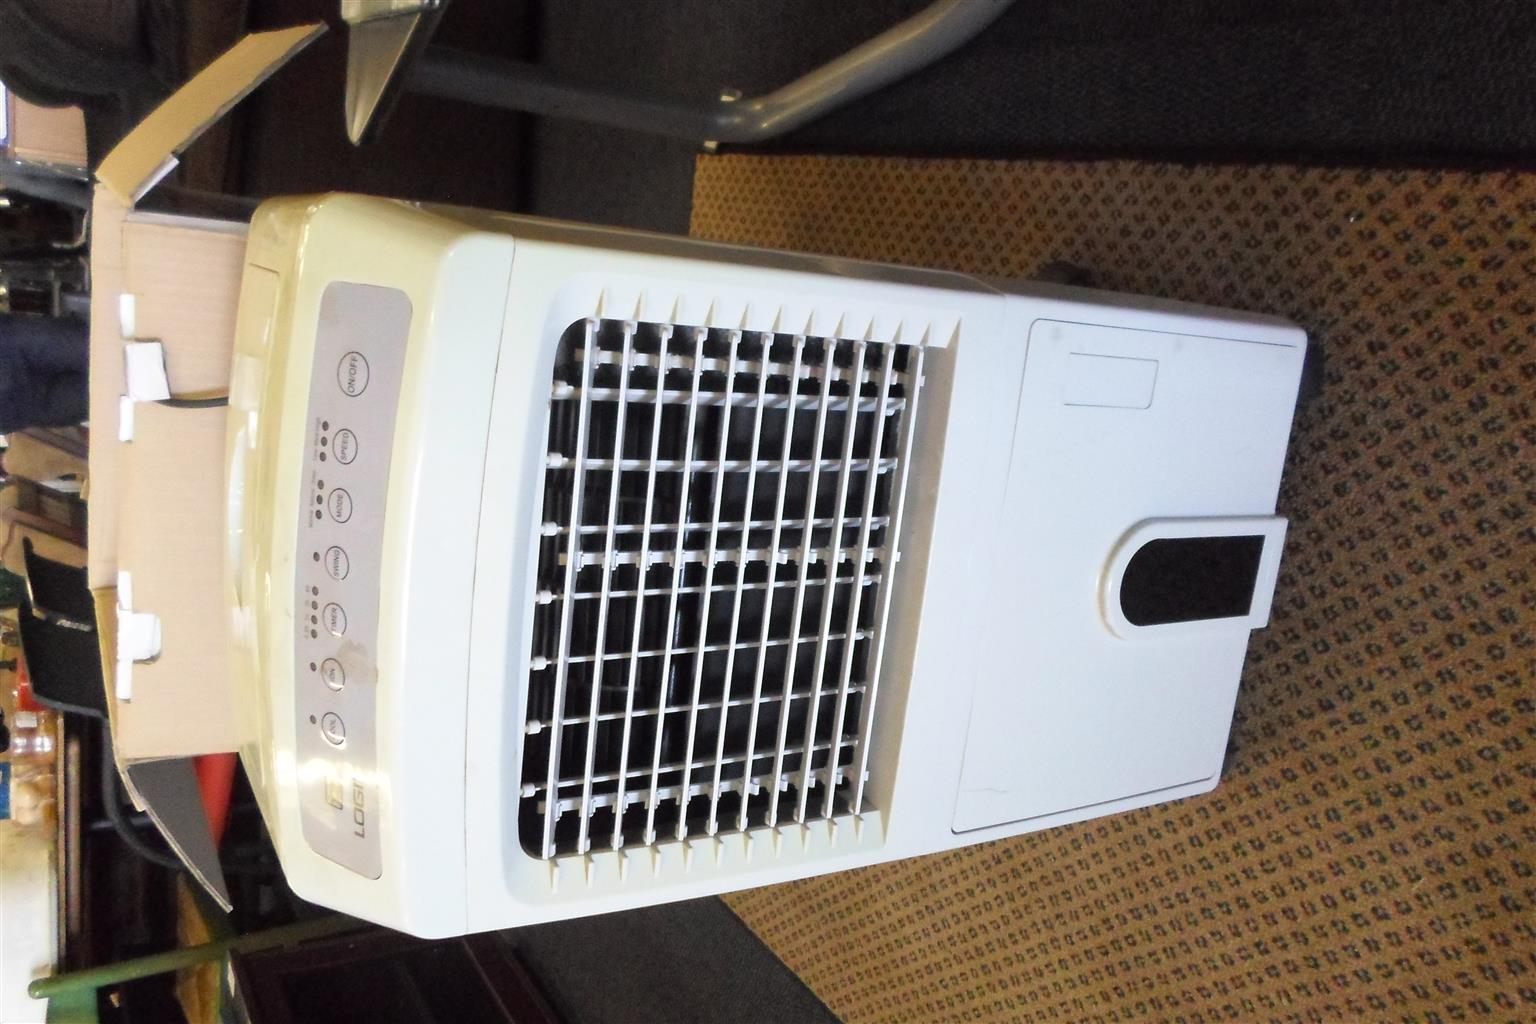 7.5L Logik Portable Evaporative Air Cooler